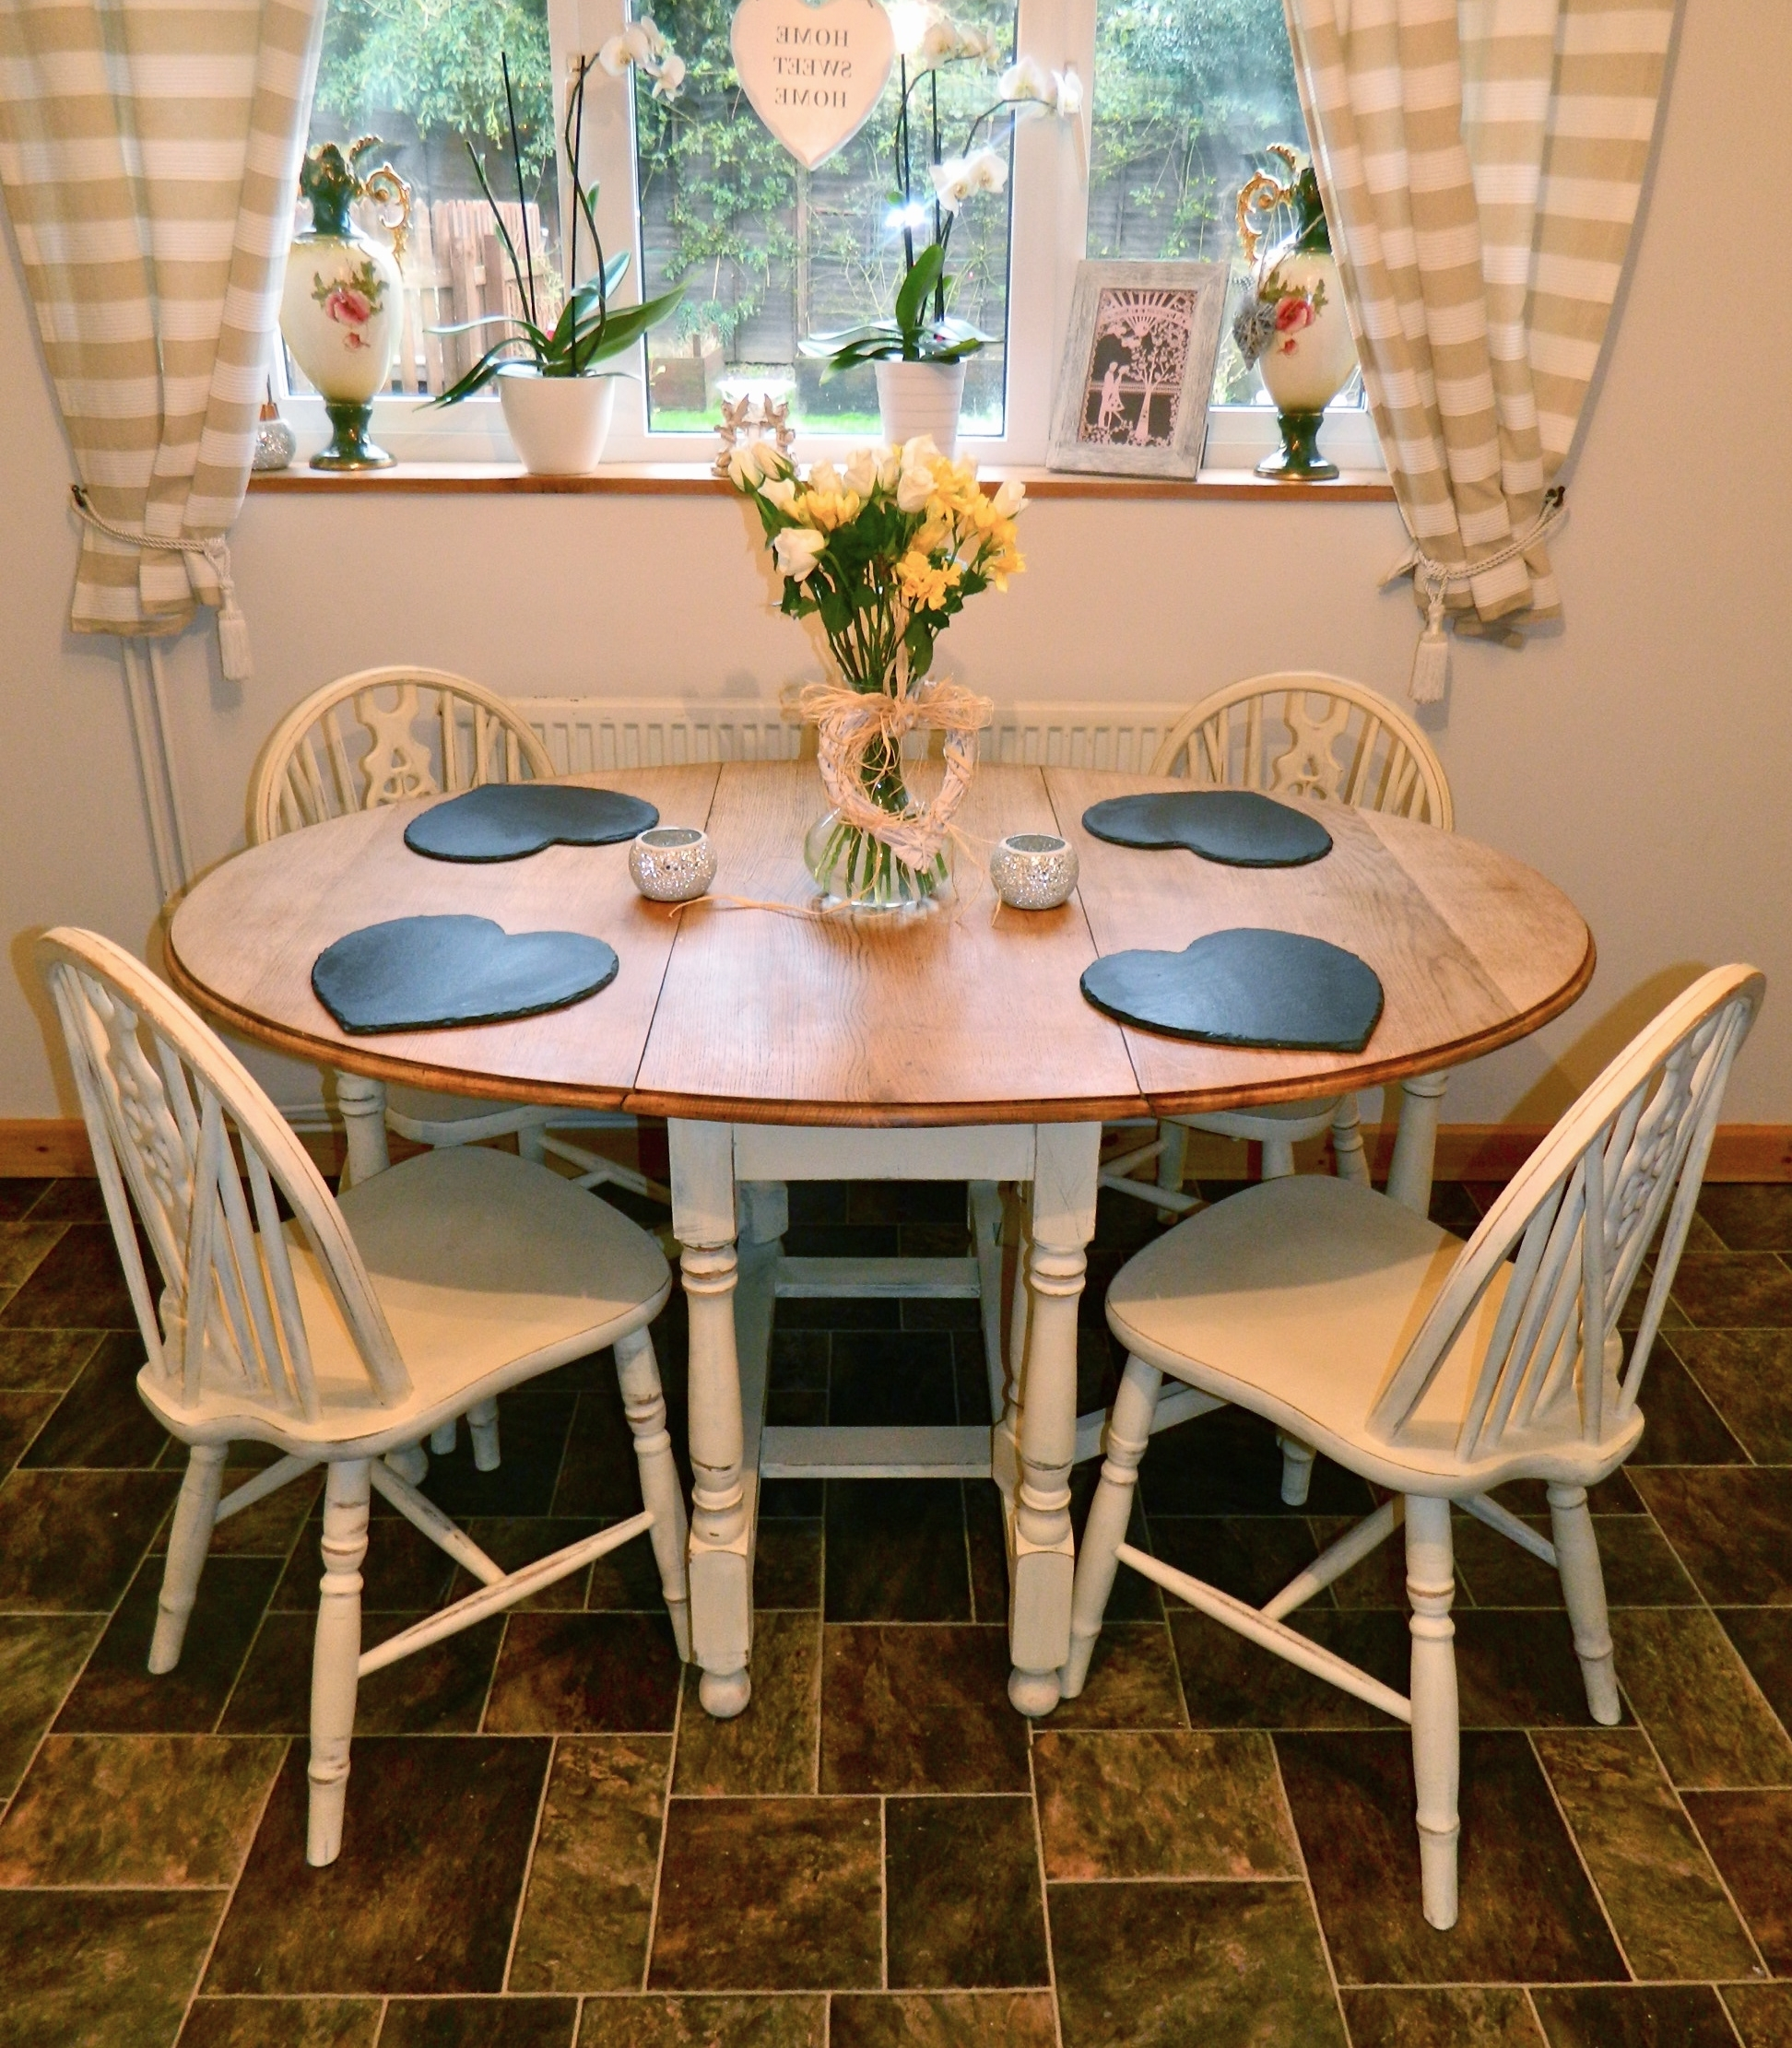 Most Recently Released Beautiful Shabby Chic Oval Oak Drop Leaf Dining Table And 4 Chairs Inside Shabby Chic Dining Sets (View 9 of 25)